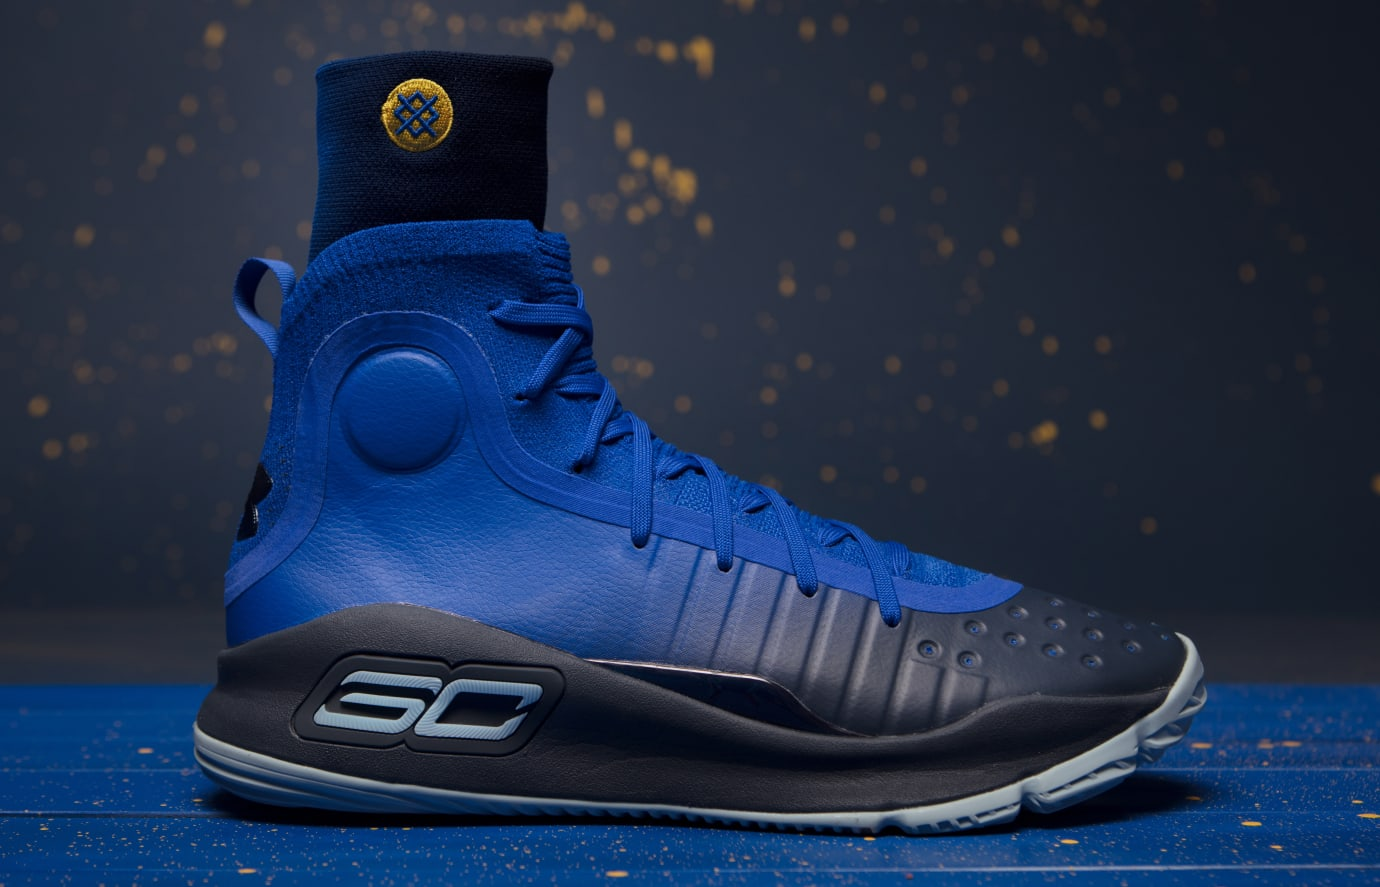 734fa2a737dd ... Image via Under Armour Under Armour Curry 4 More Fun 1298306-401 x  Stance 1326667 ...